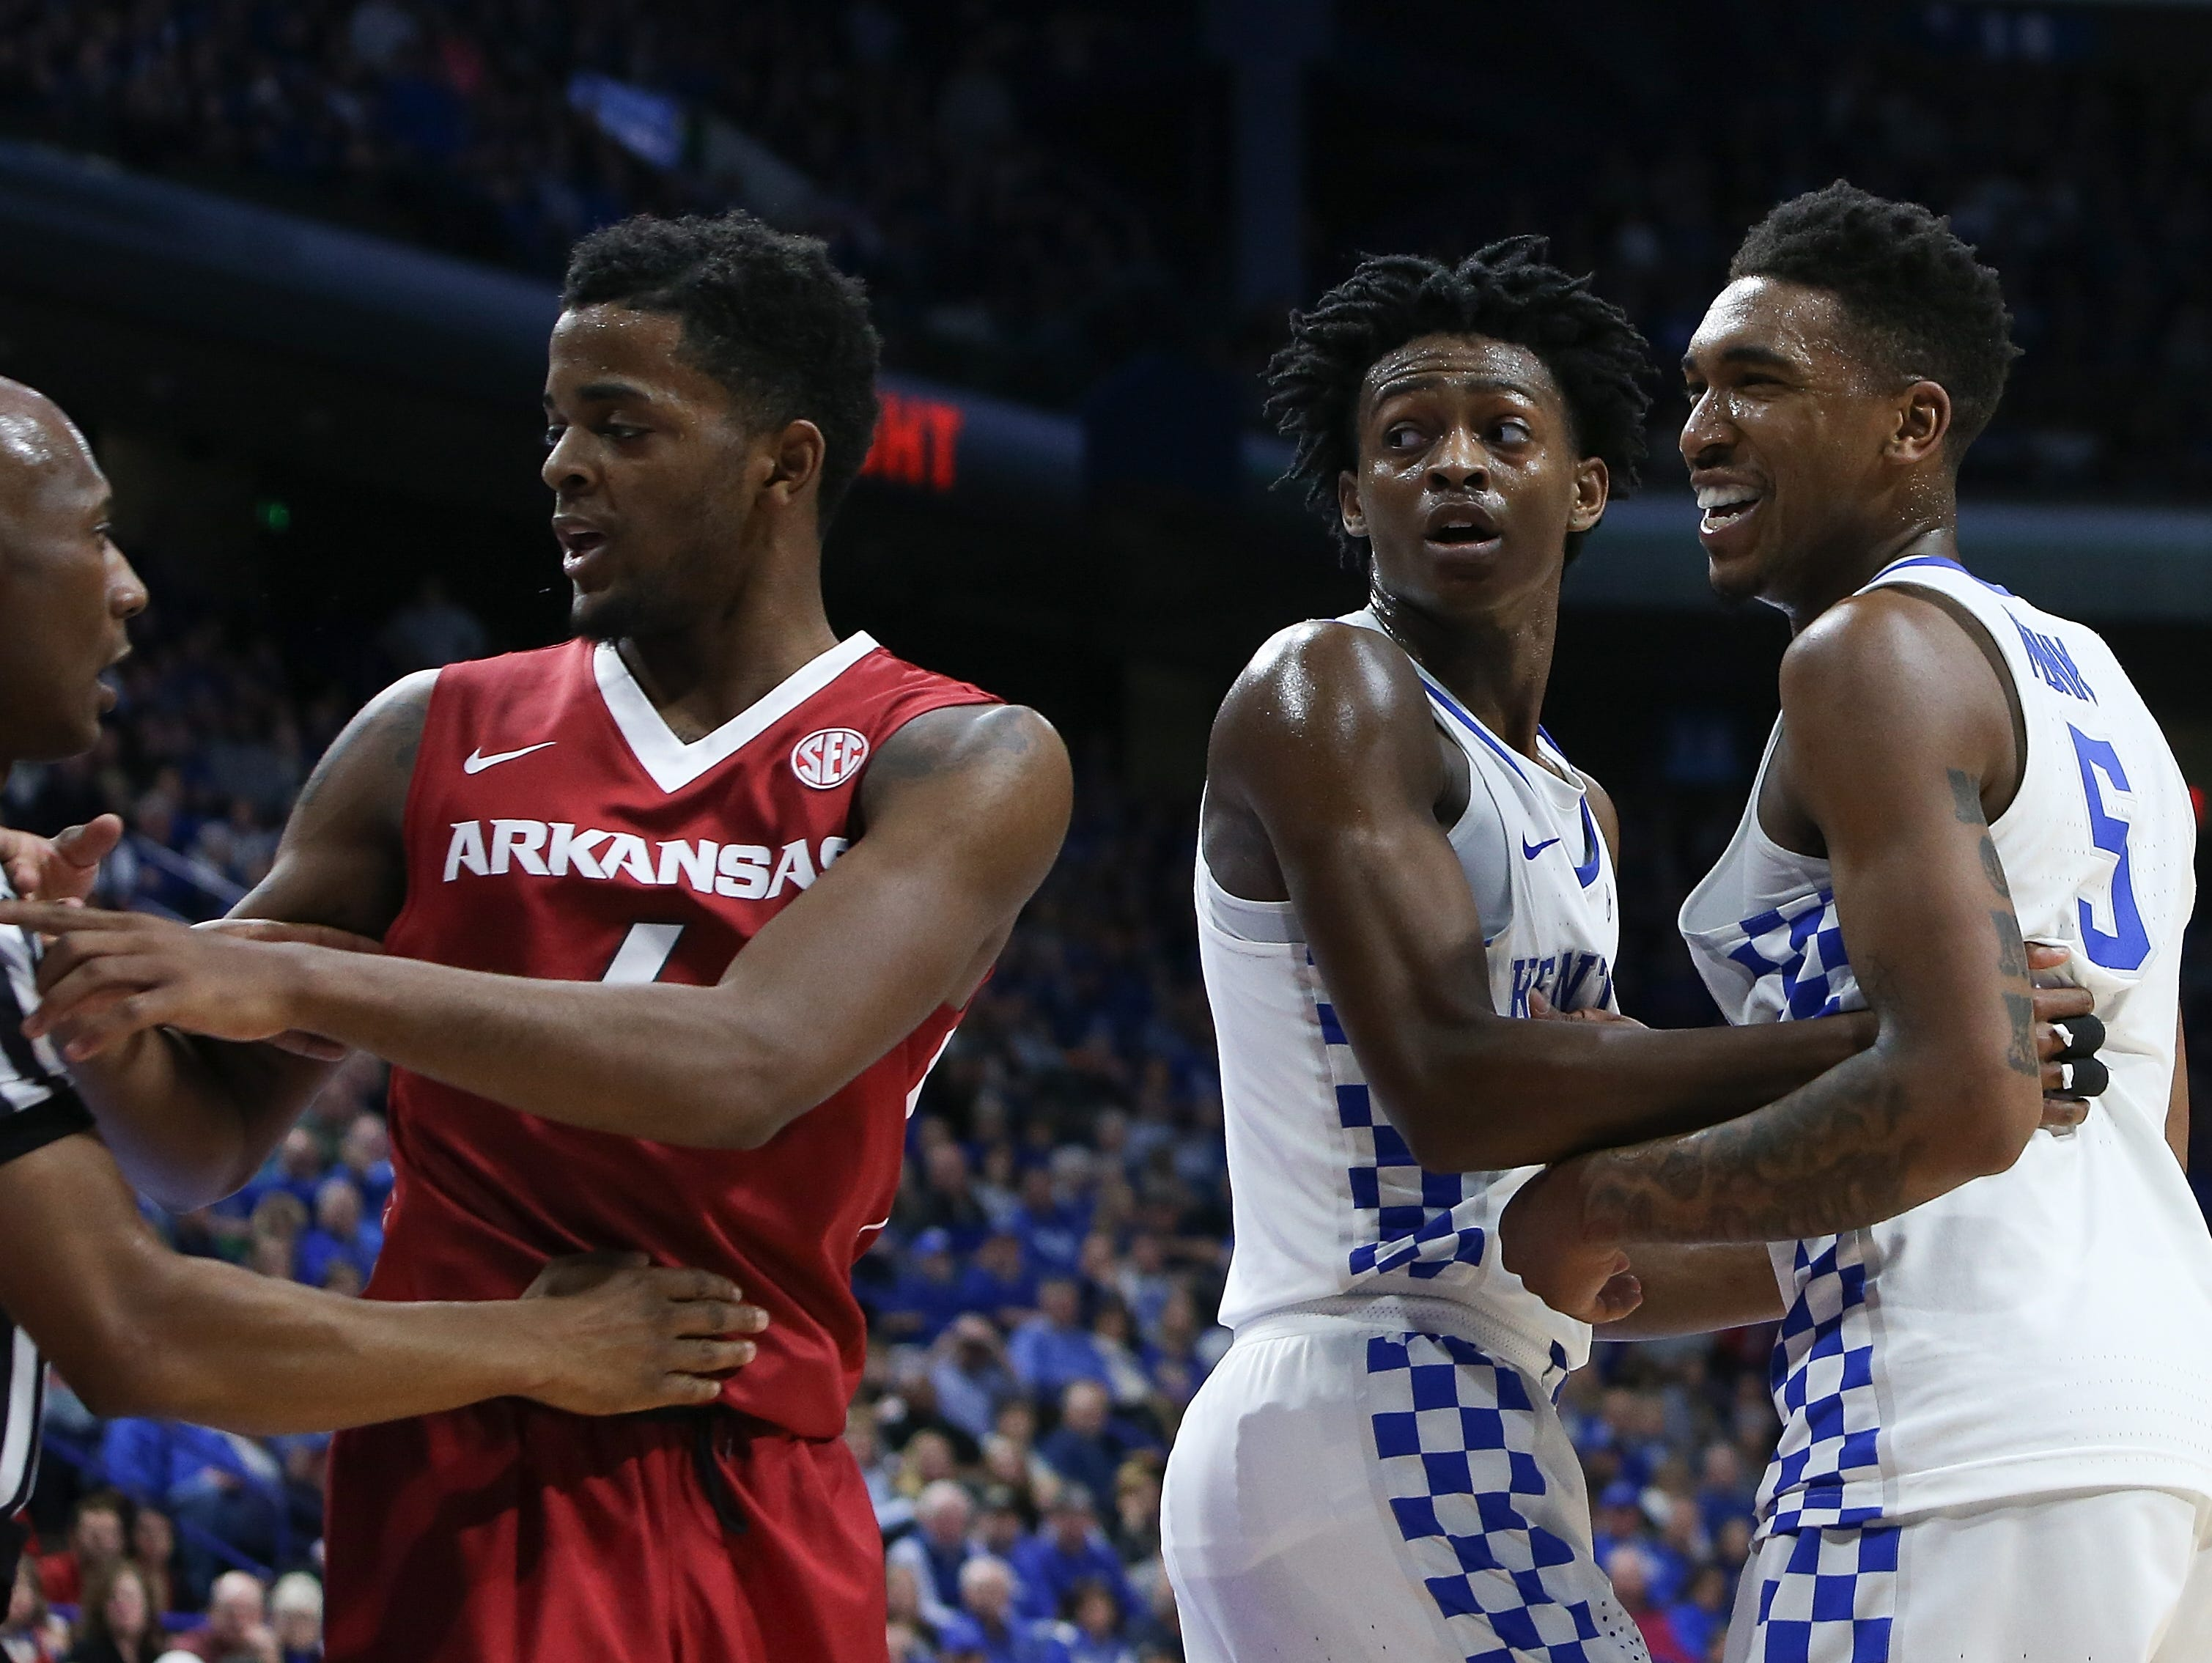 Referee Alfred Smith breaks up an argument between Arkansas Razorbacks guard Daryl Macon and Kentucky Wildcats guard Malik Monk during the second half at Rupp Arena in Lexington, Kentucky on Saturday, January 7, 2017.